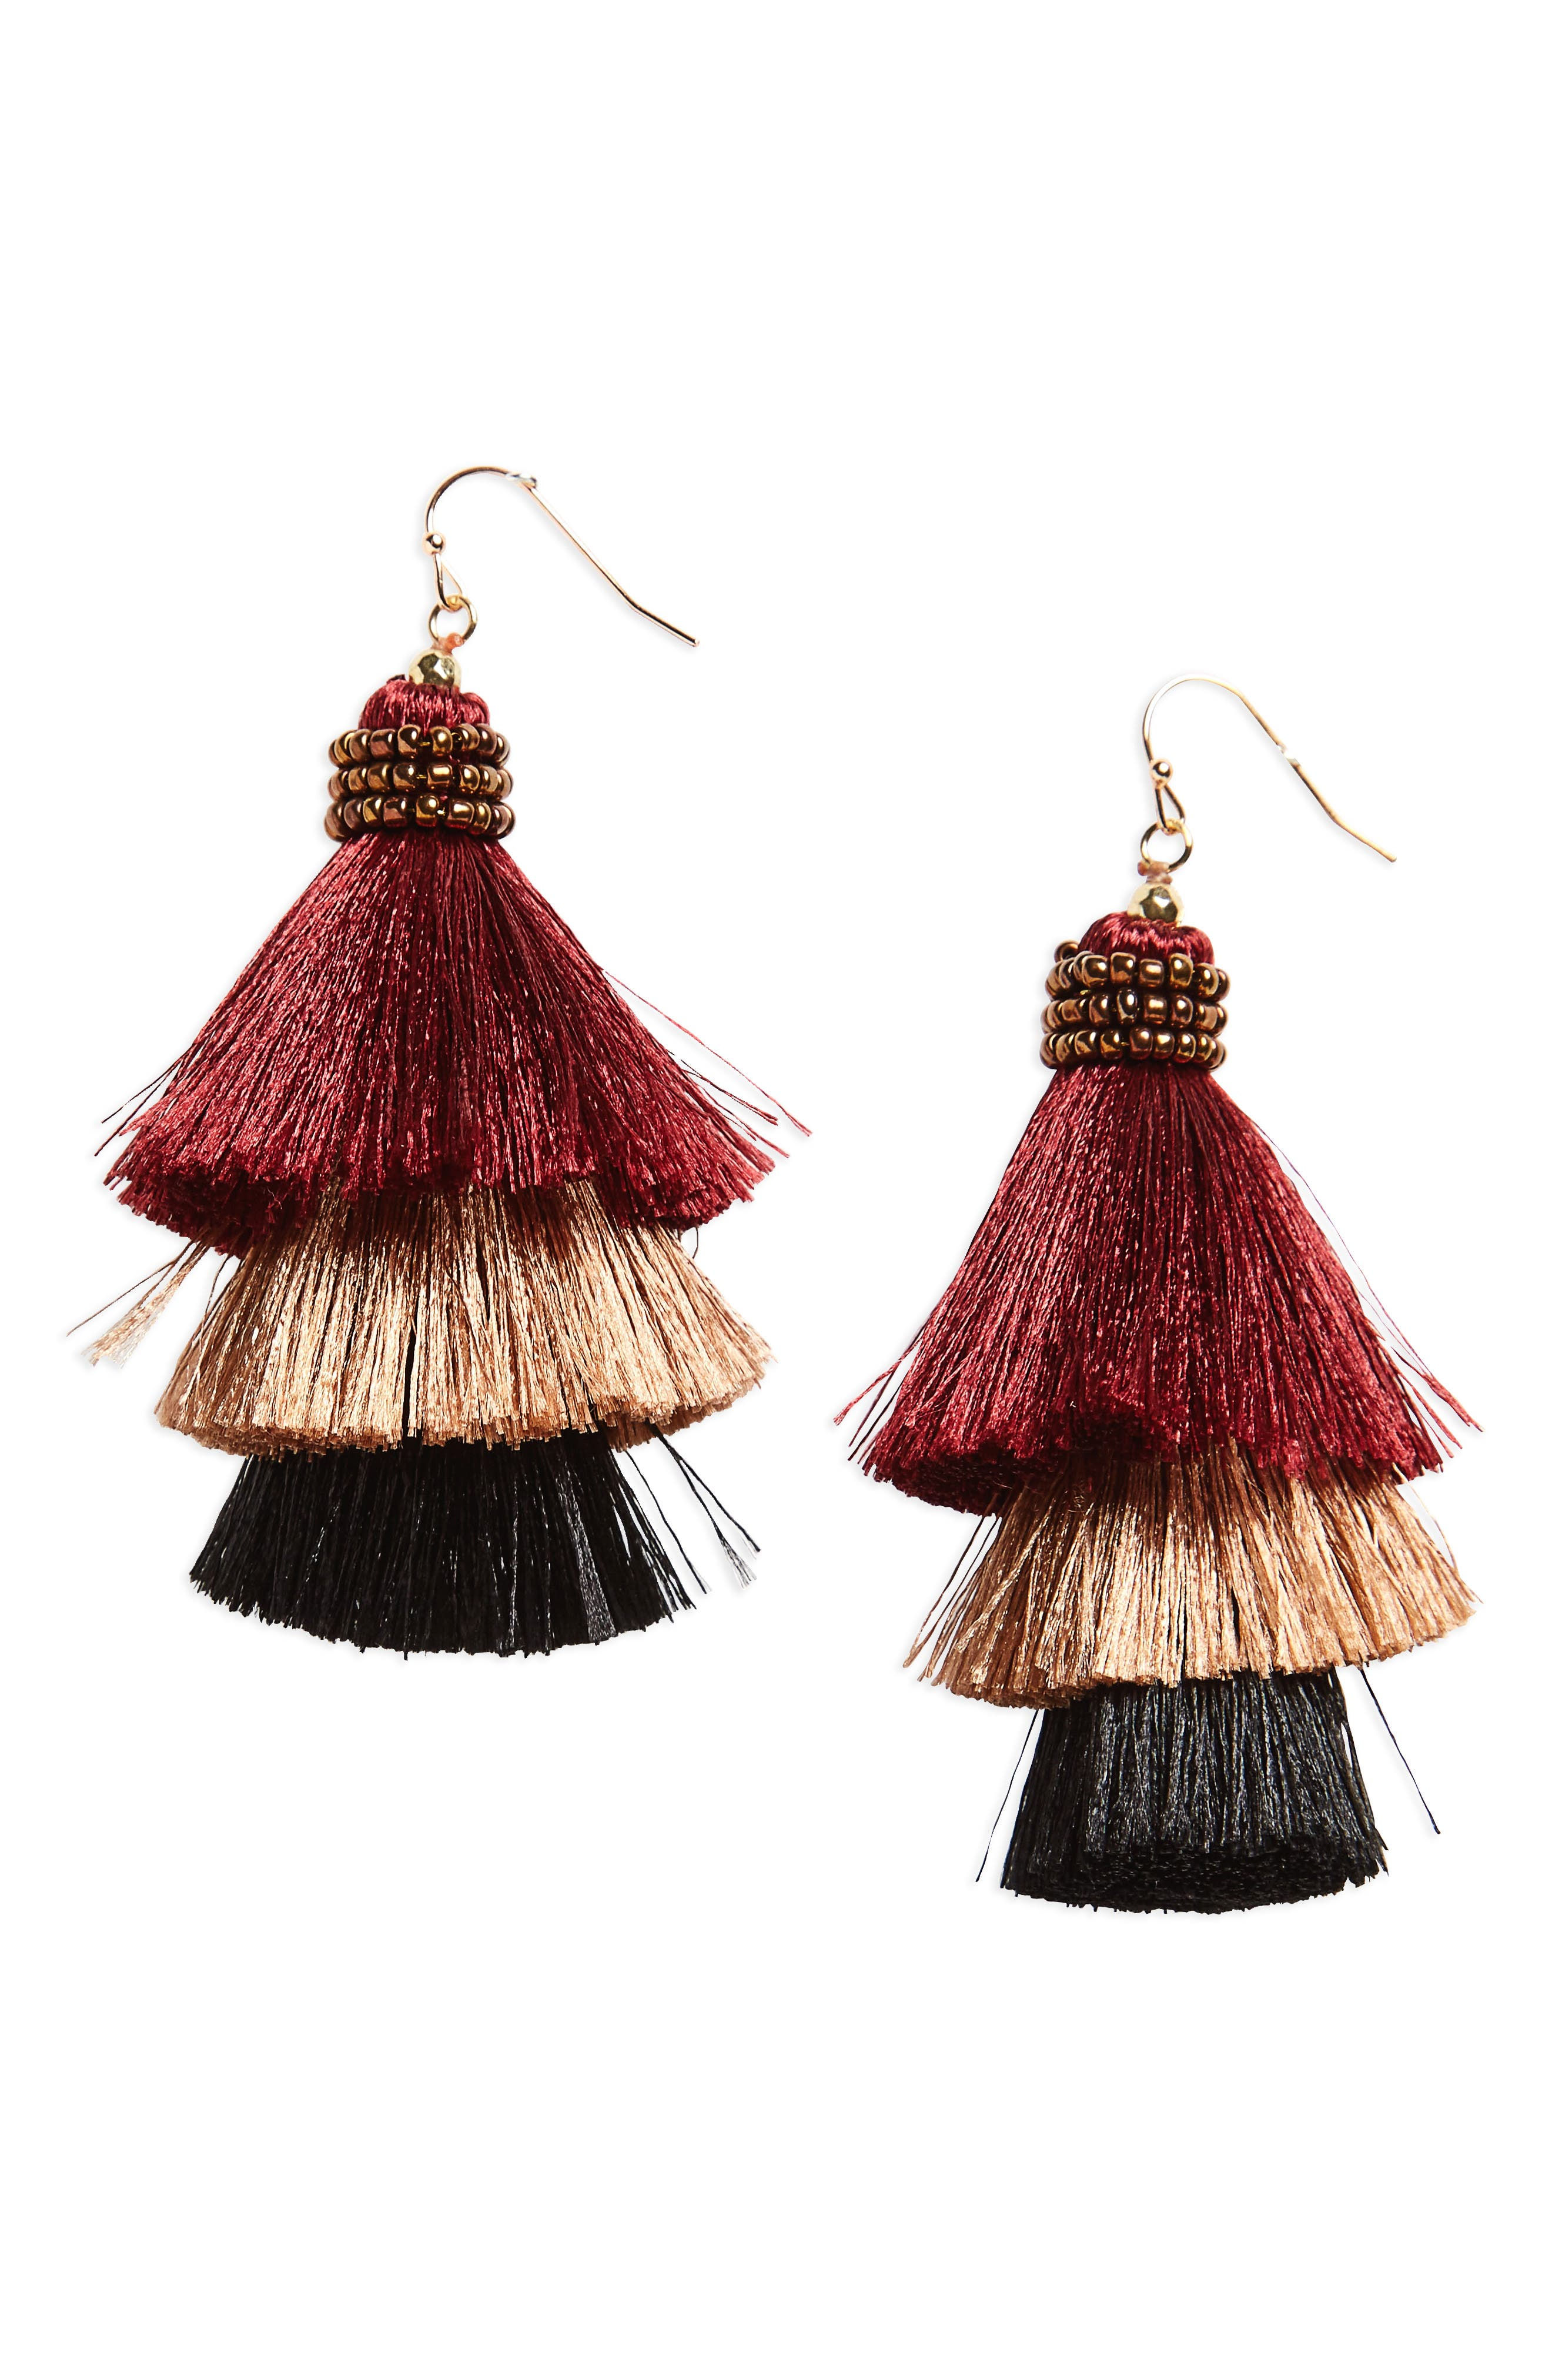 Panacea Tiered Tassel Earrings